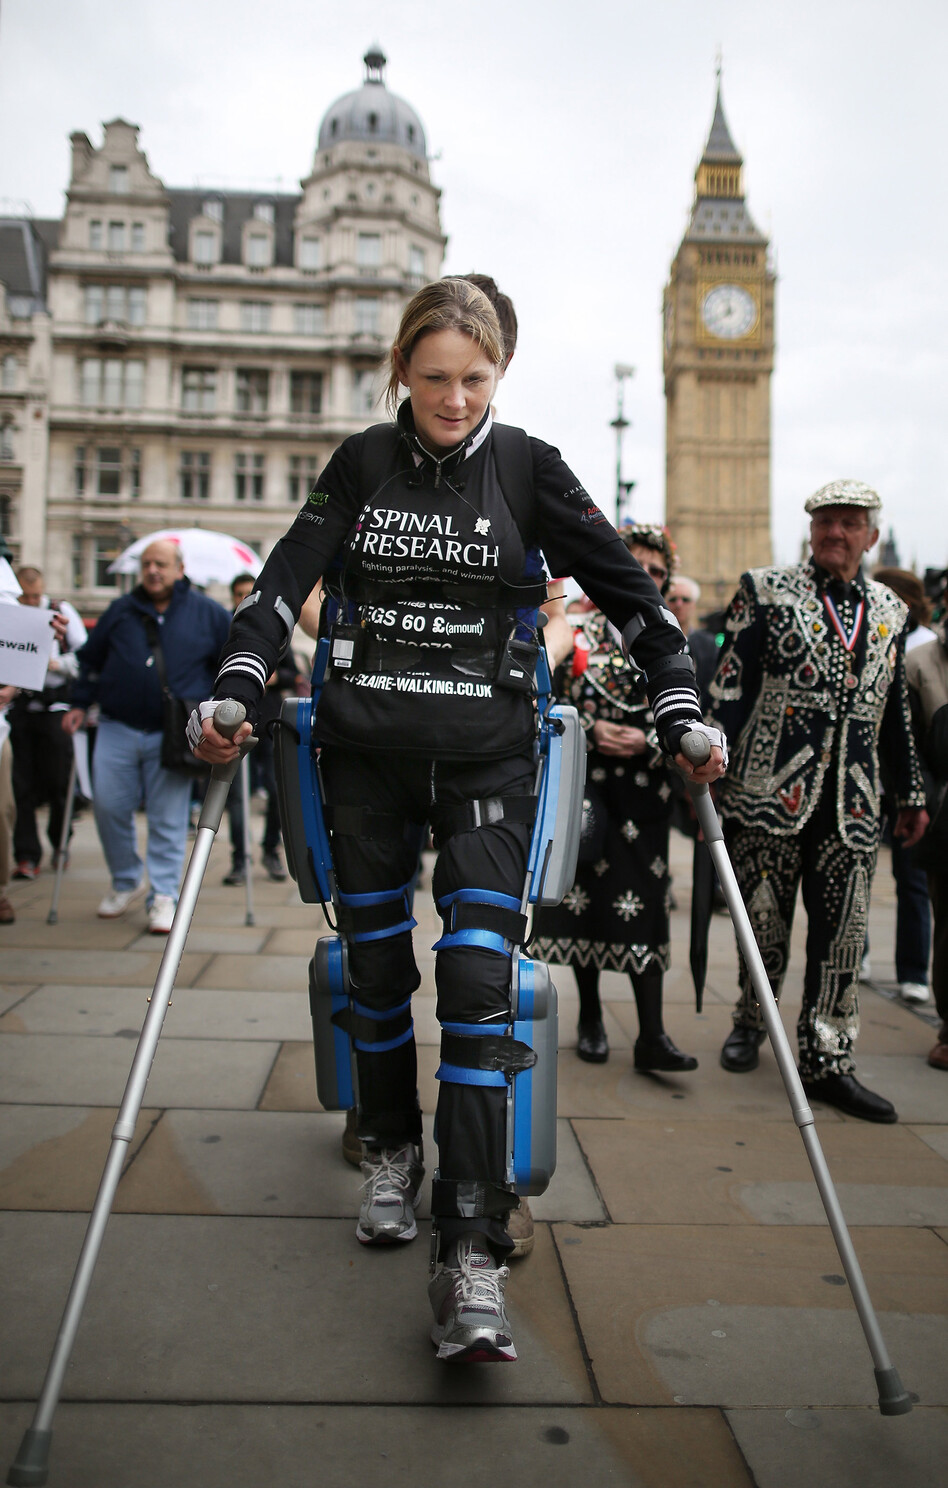 Claire Lomas, a paraplegic, walks the last mile of the London Marathon in May 2012. Starting out with 36,000 other runners, she averaged two miles a day with the help of a bionic ReWalk suit by Argo Medical Technologies. (Getty Images)